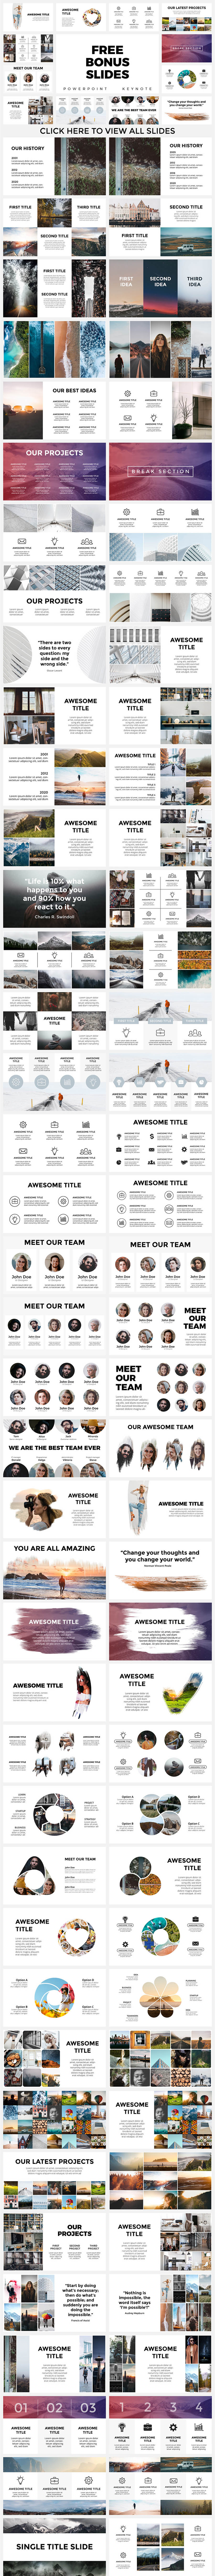 Fresh template with its own style and atmosphere. Classic icons and infographics placate the whole design.